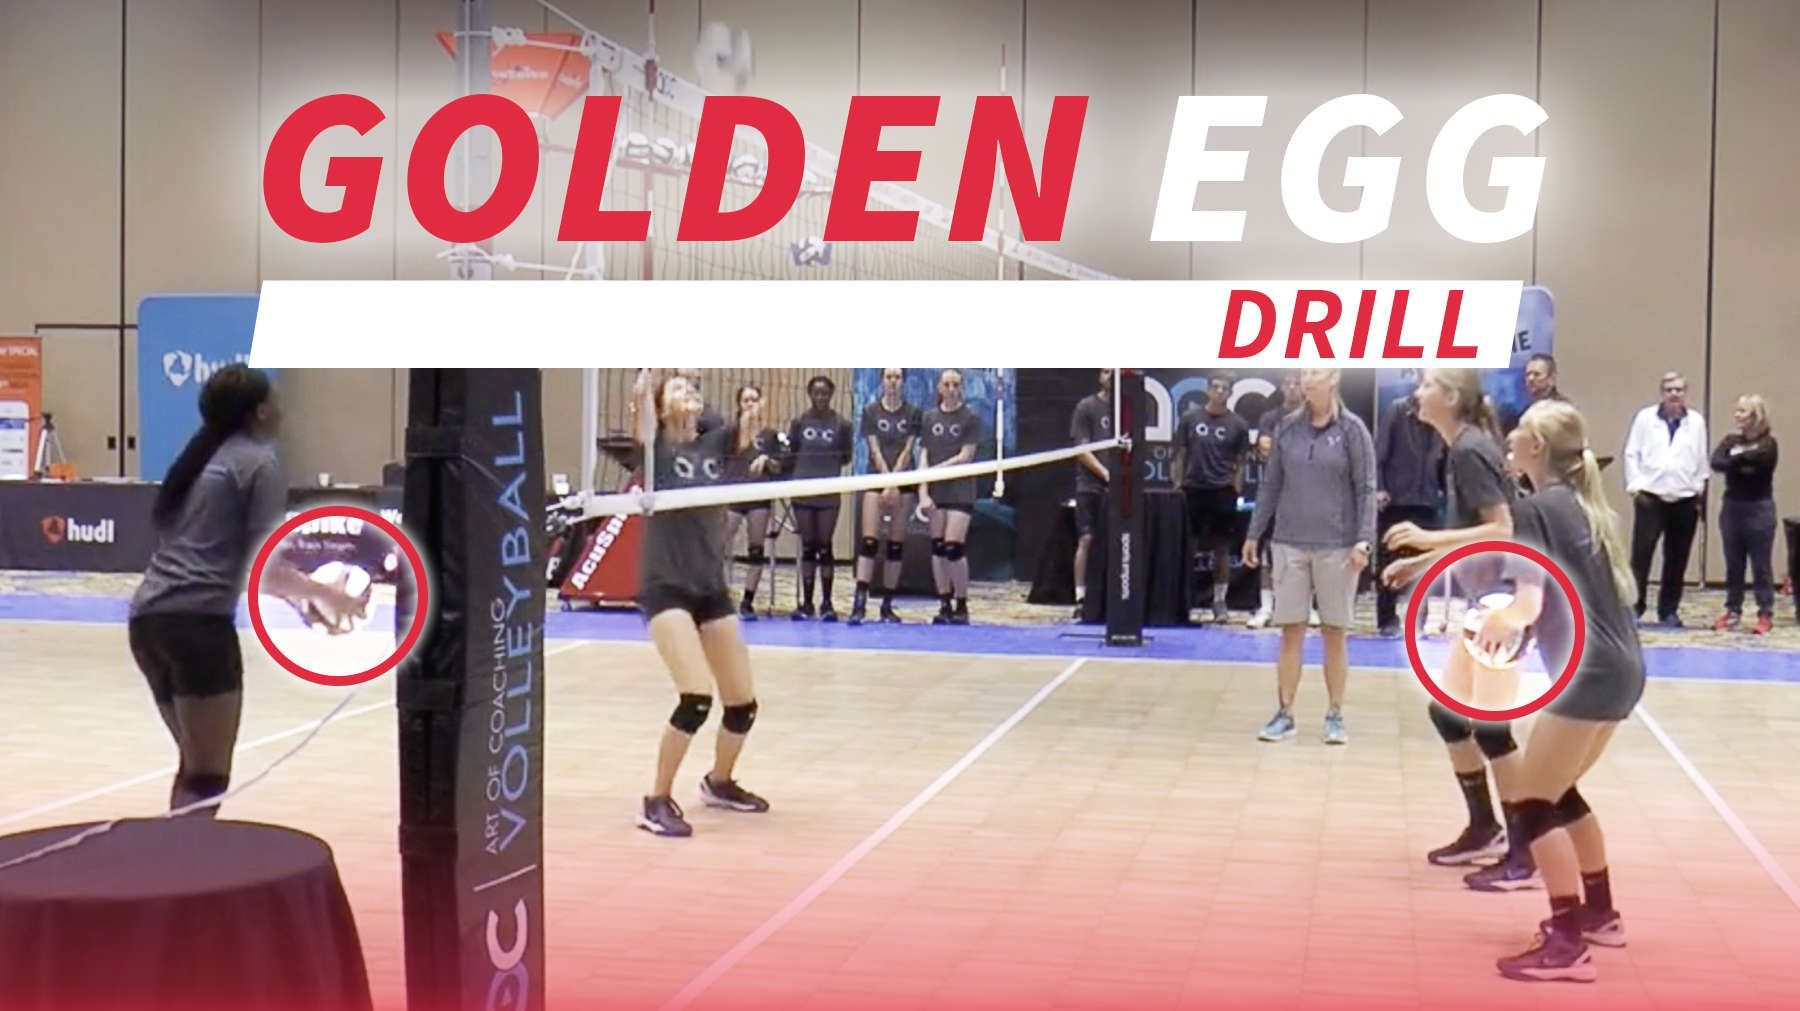 Golden Egg Drill Don T Drop The Egg Coaching Volleyball Volleyball Basketball Workouts